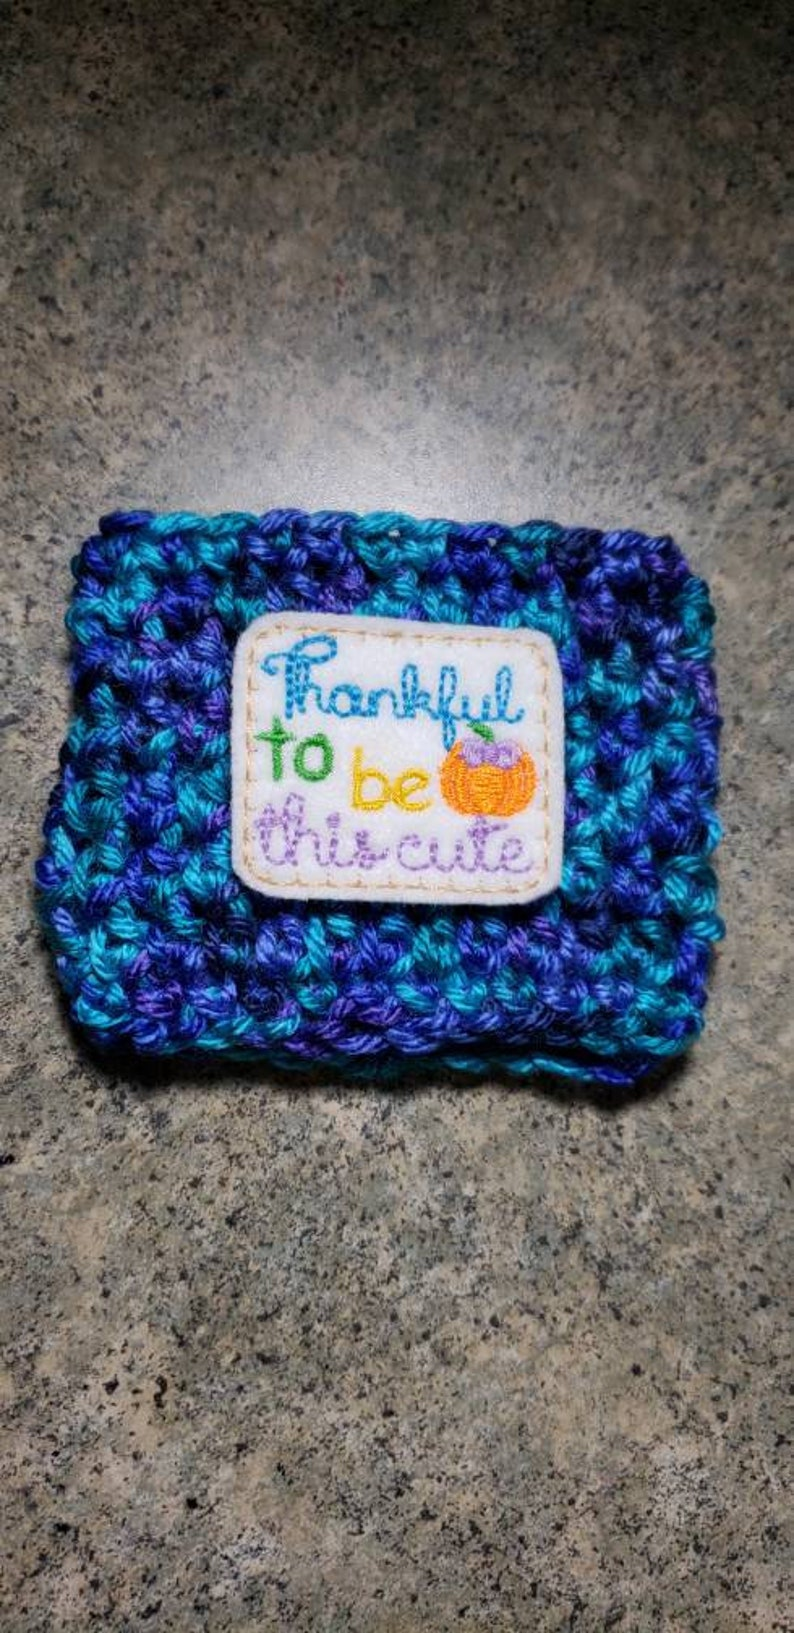 Thankful To Be This Cute Feltie Cozy. Crochet Cup Sleeve image 0